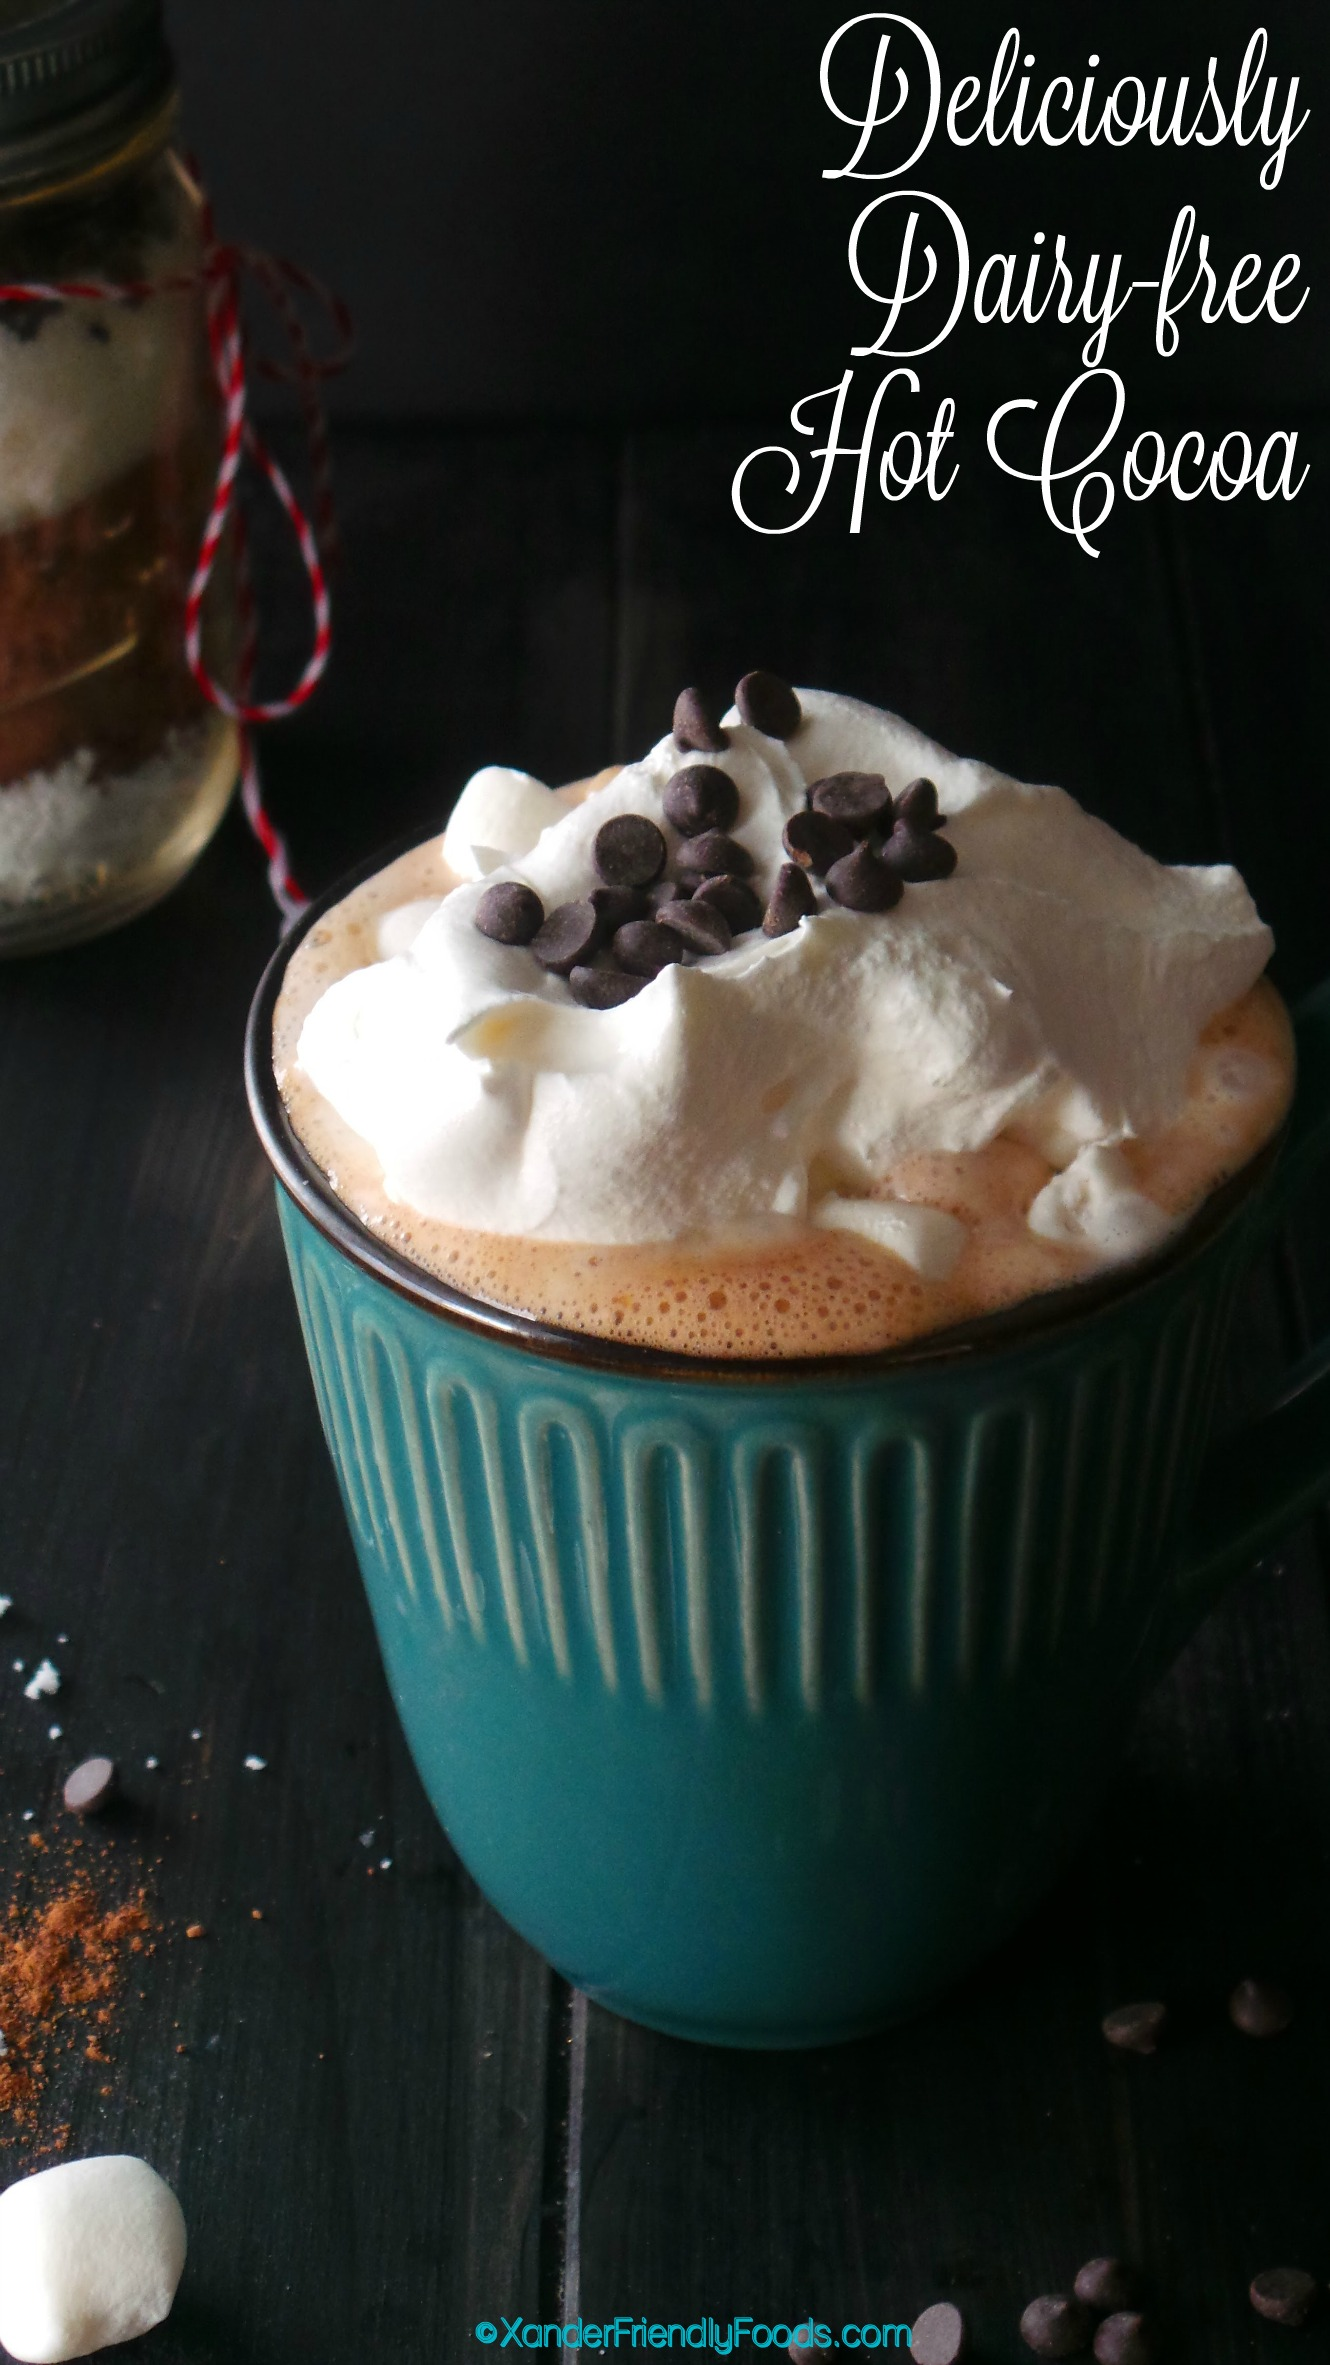 Deliciously dairy free hot cocoa mix for 1 or 10! Perfect treat for all your Top 8 free guests